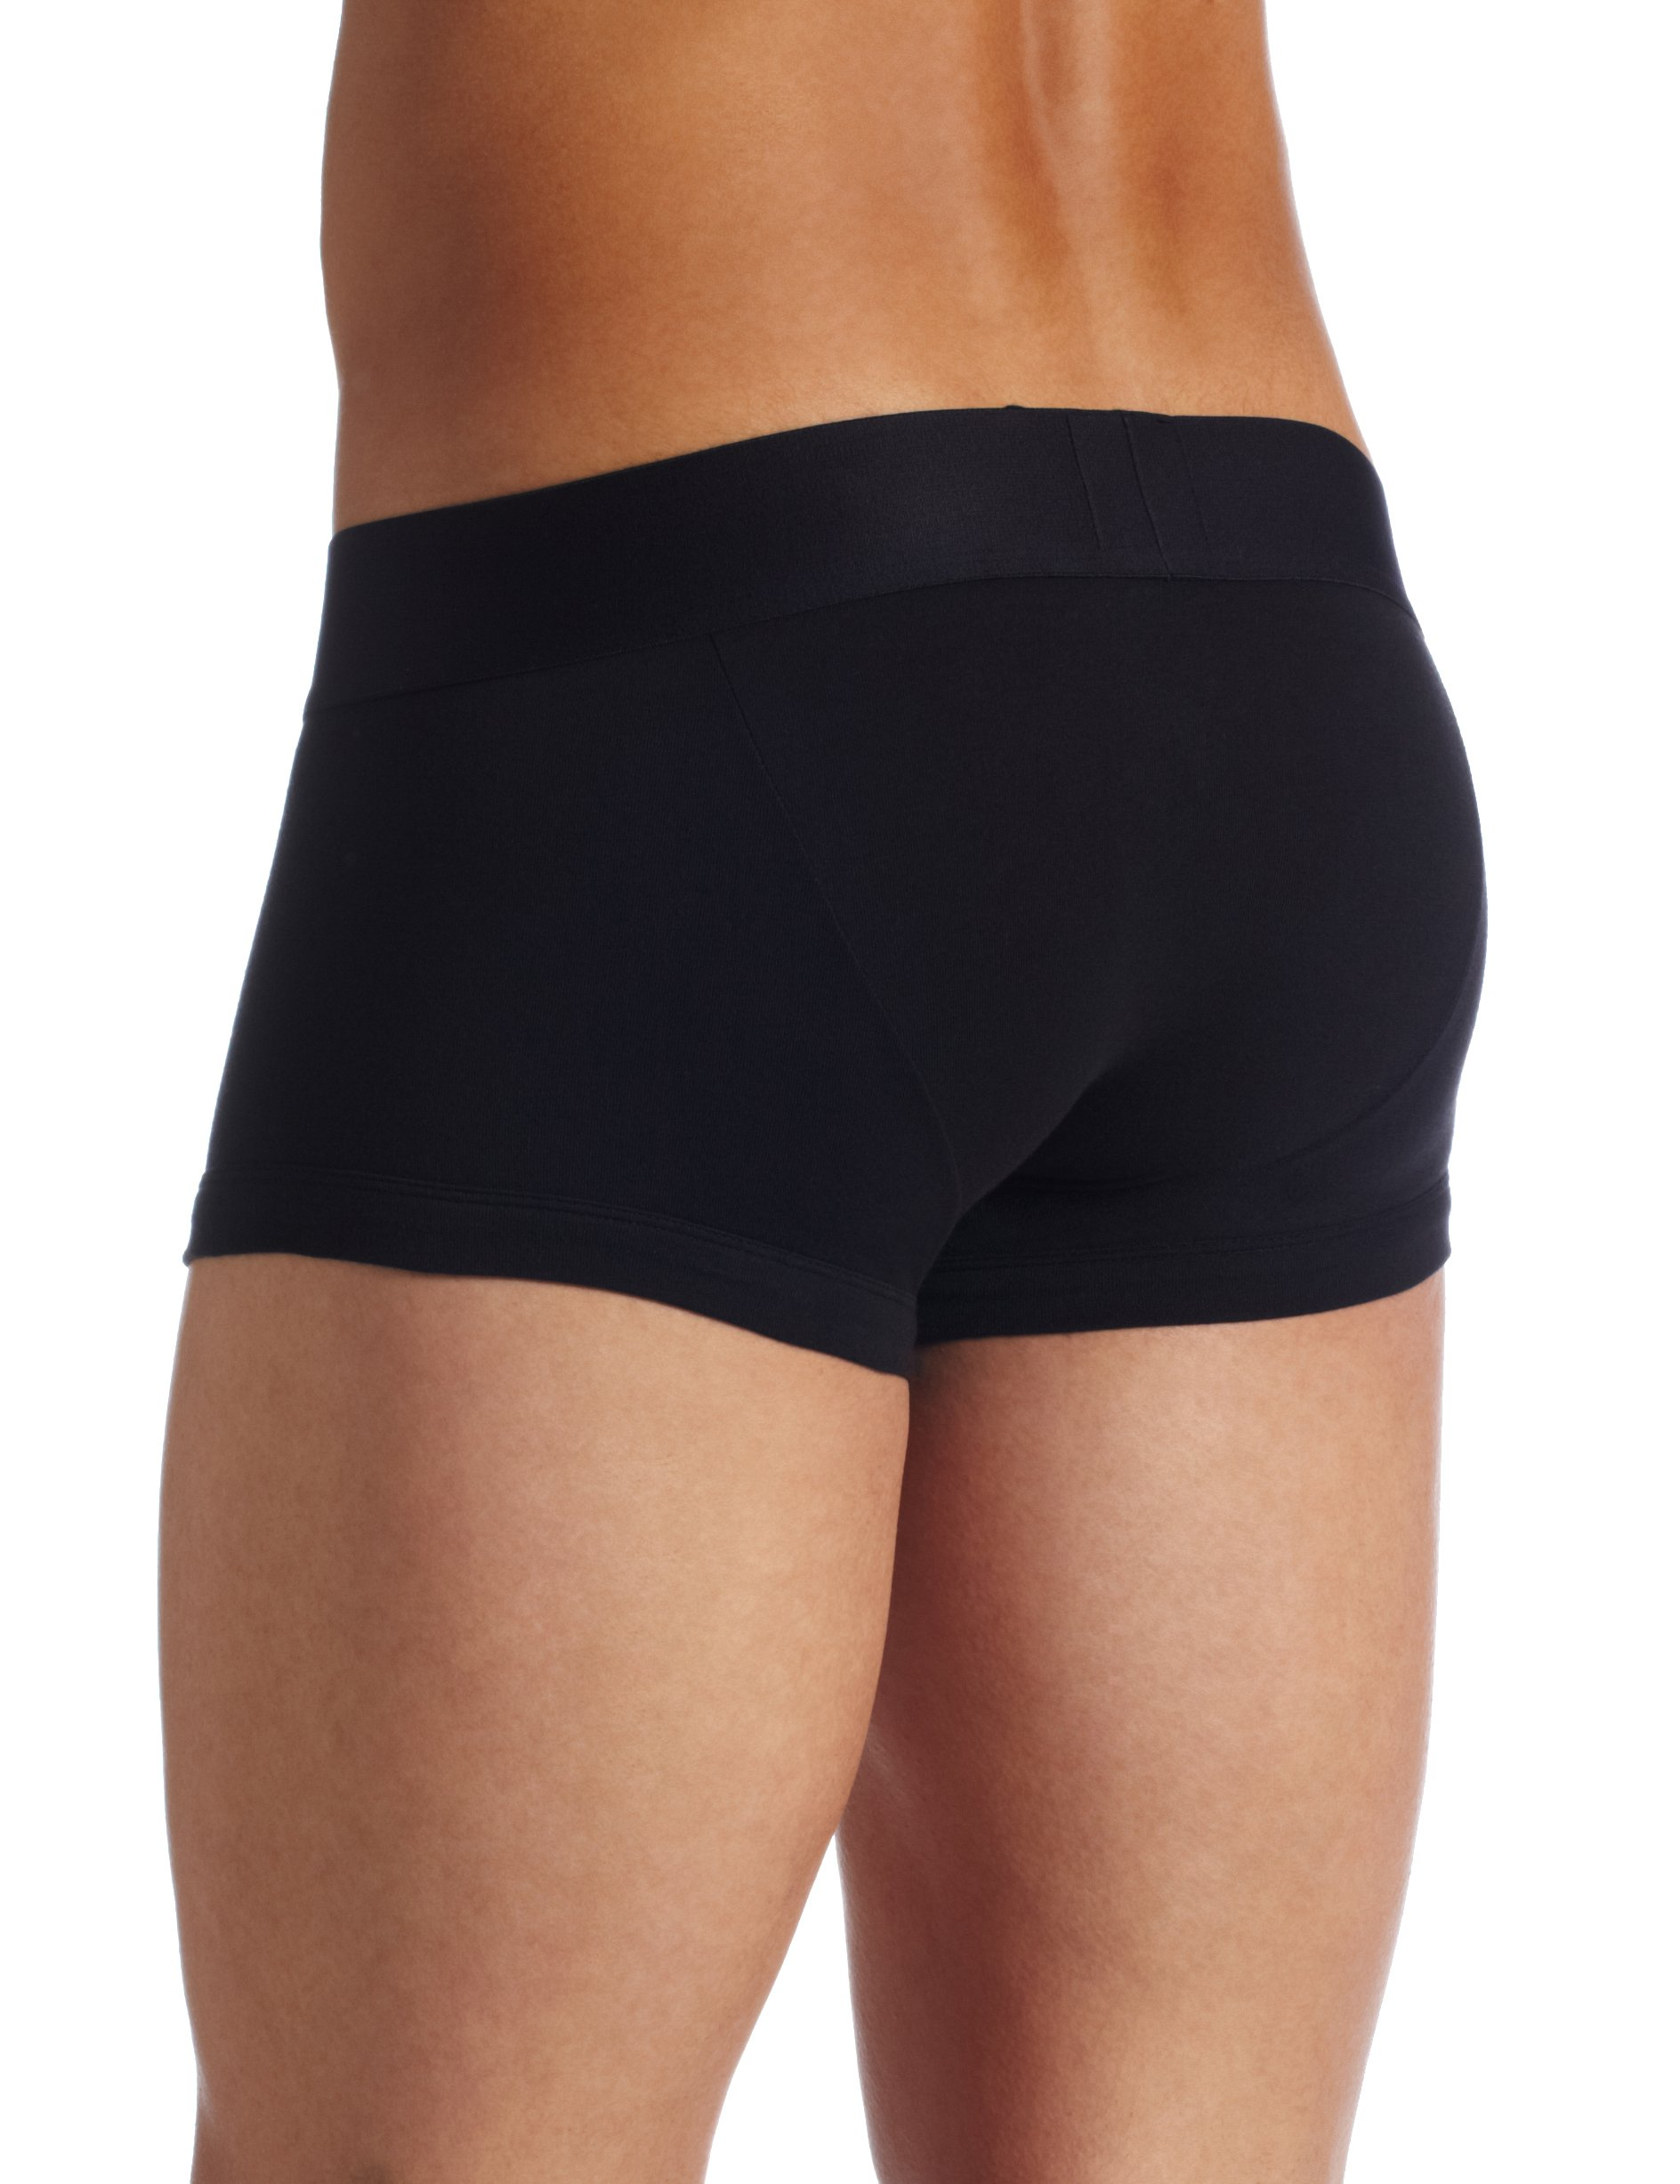 Galleon Emporio Armani Men S Cotton Stretch Trunk Black